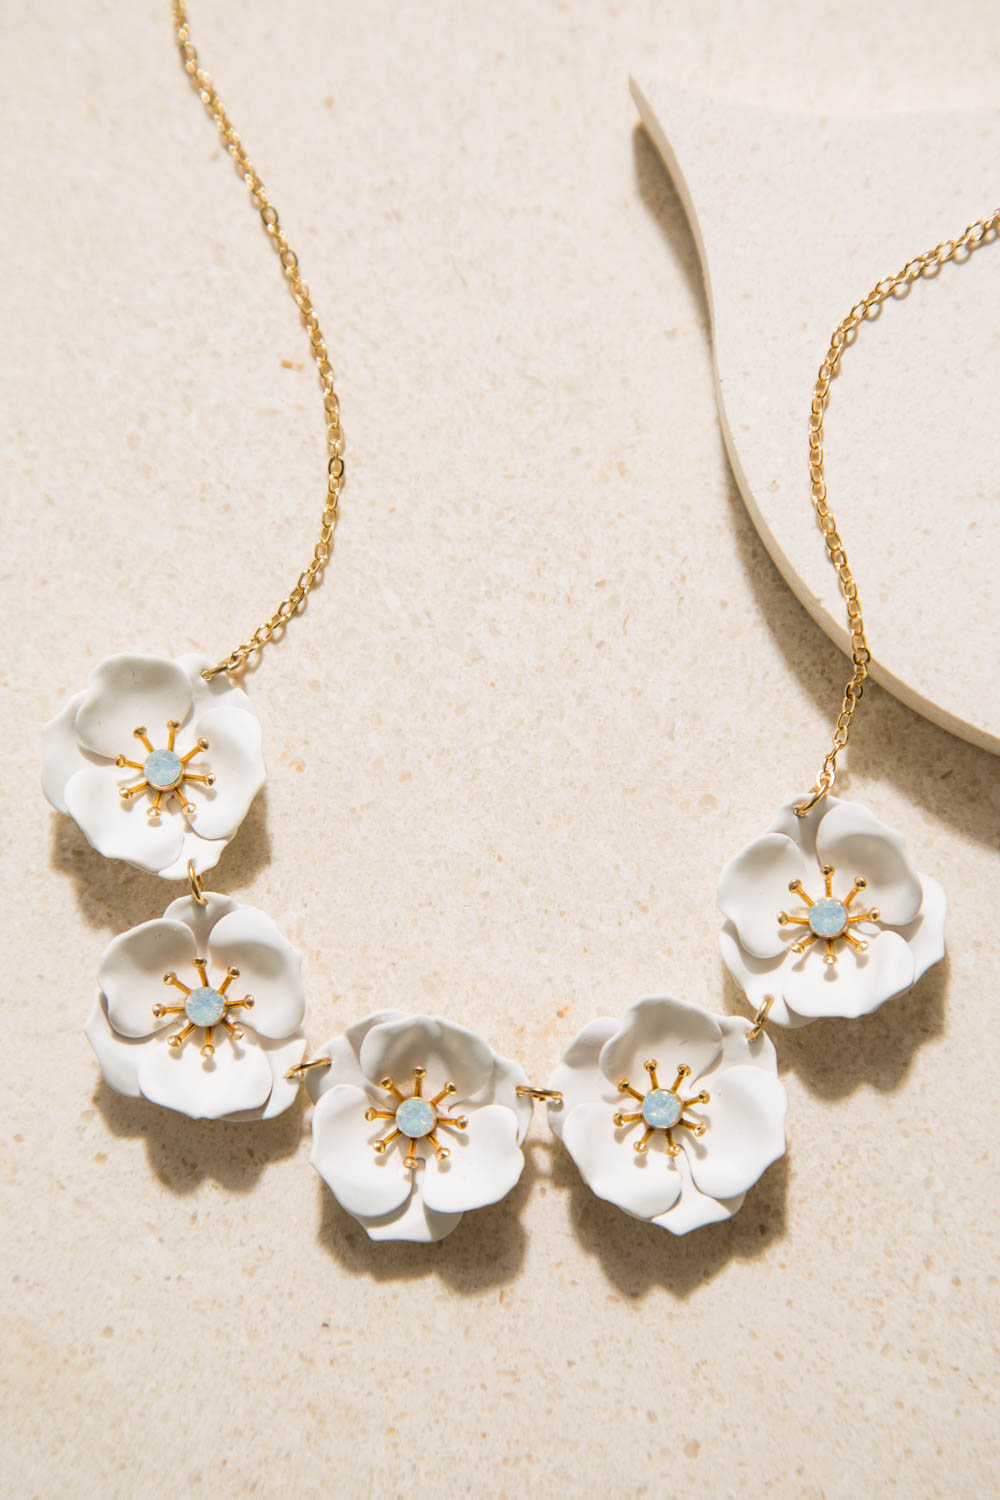 Type 1 Snow Drop Necklace